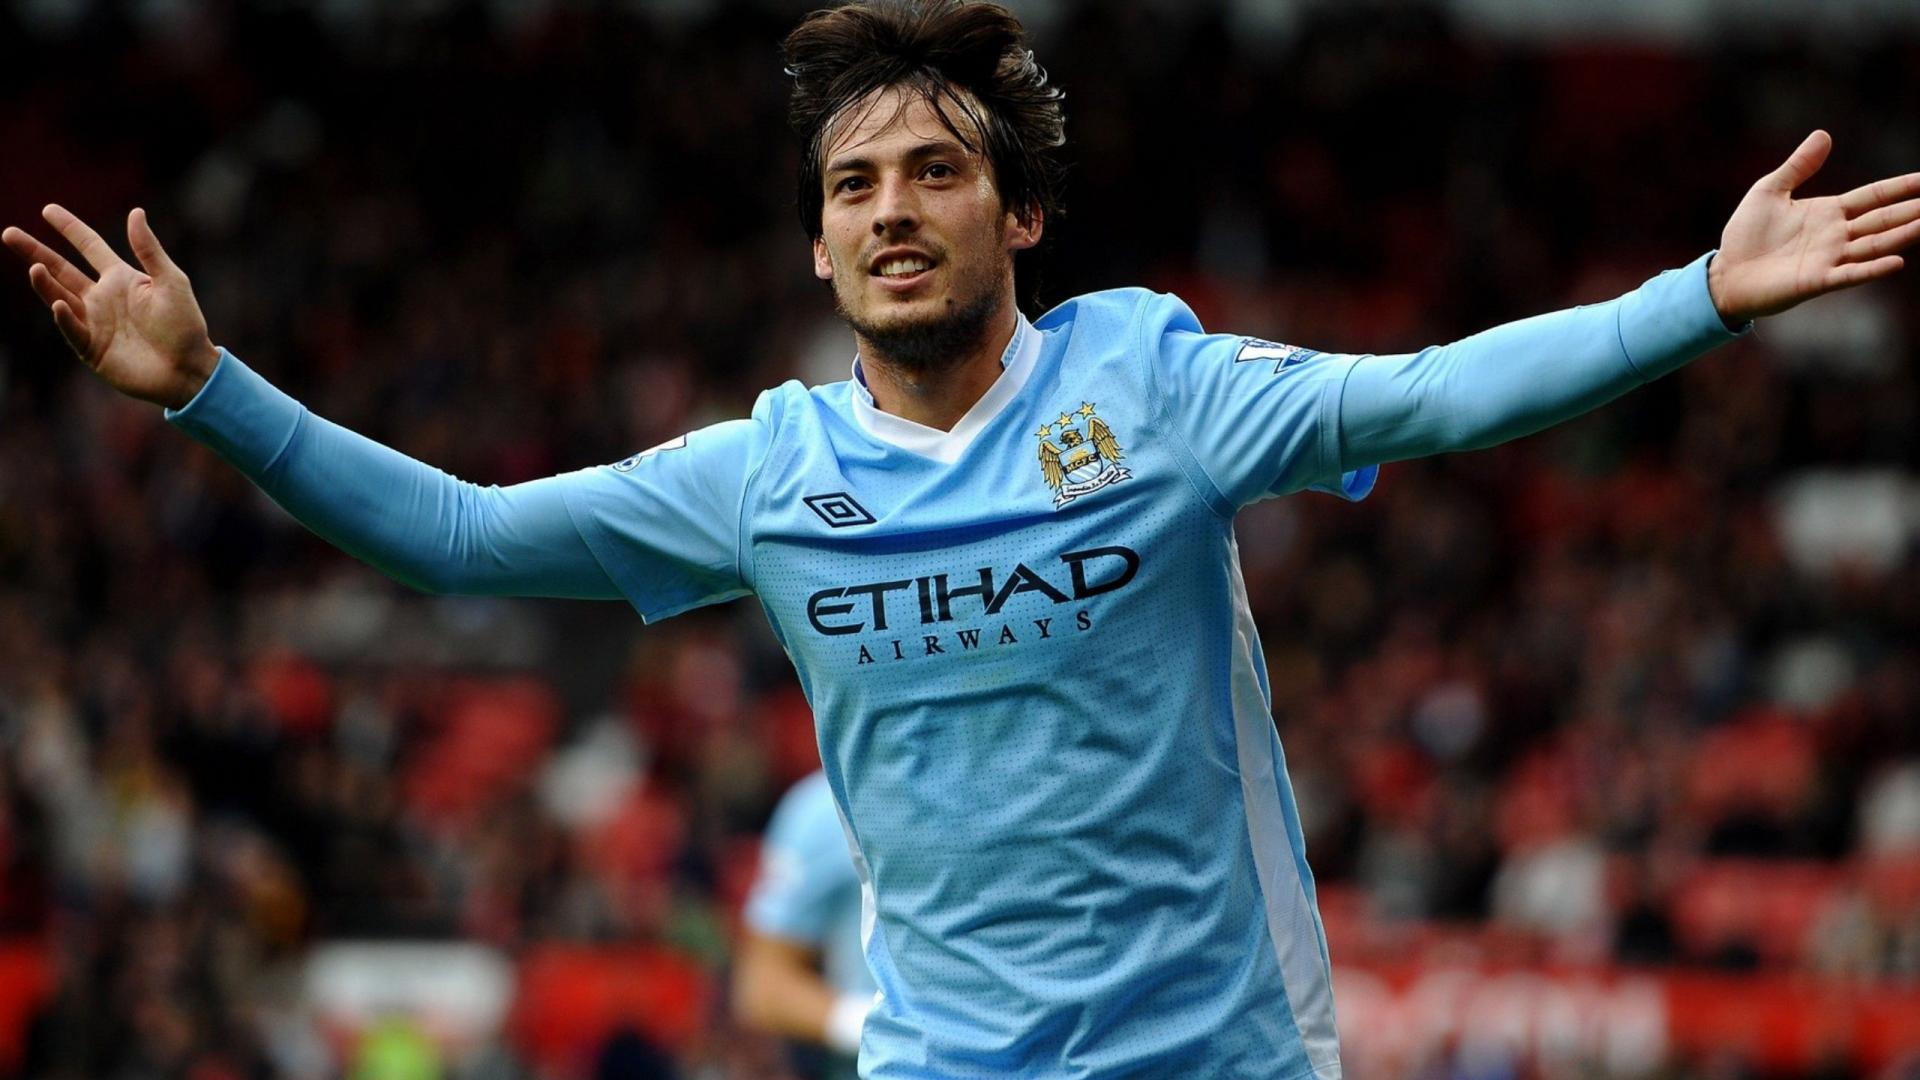 David Silva Football Players HD Wallpaper David Silva Football Players 1920x1080